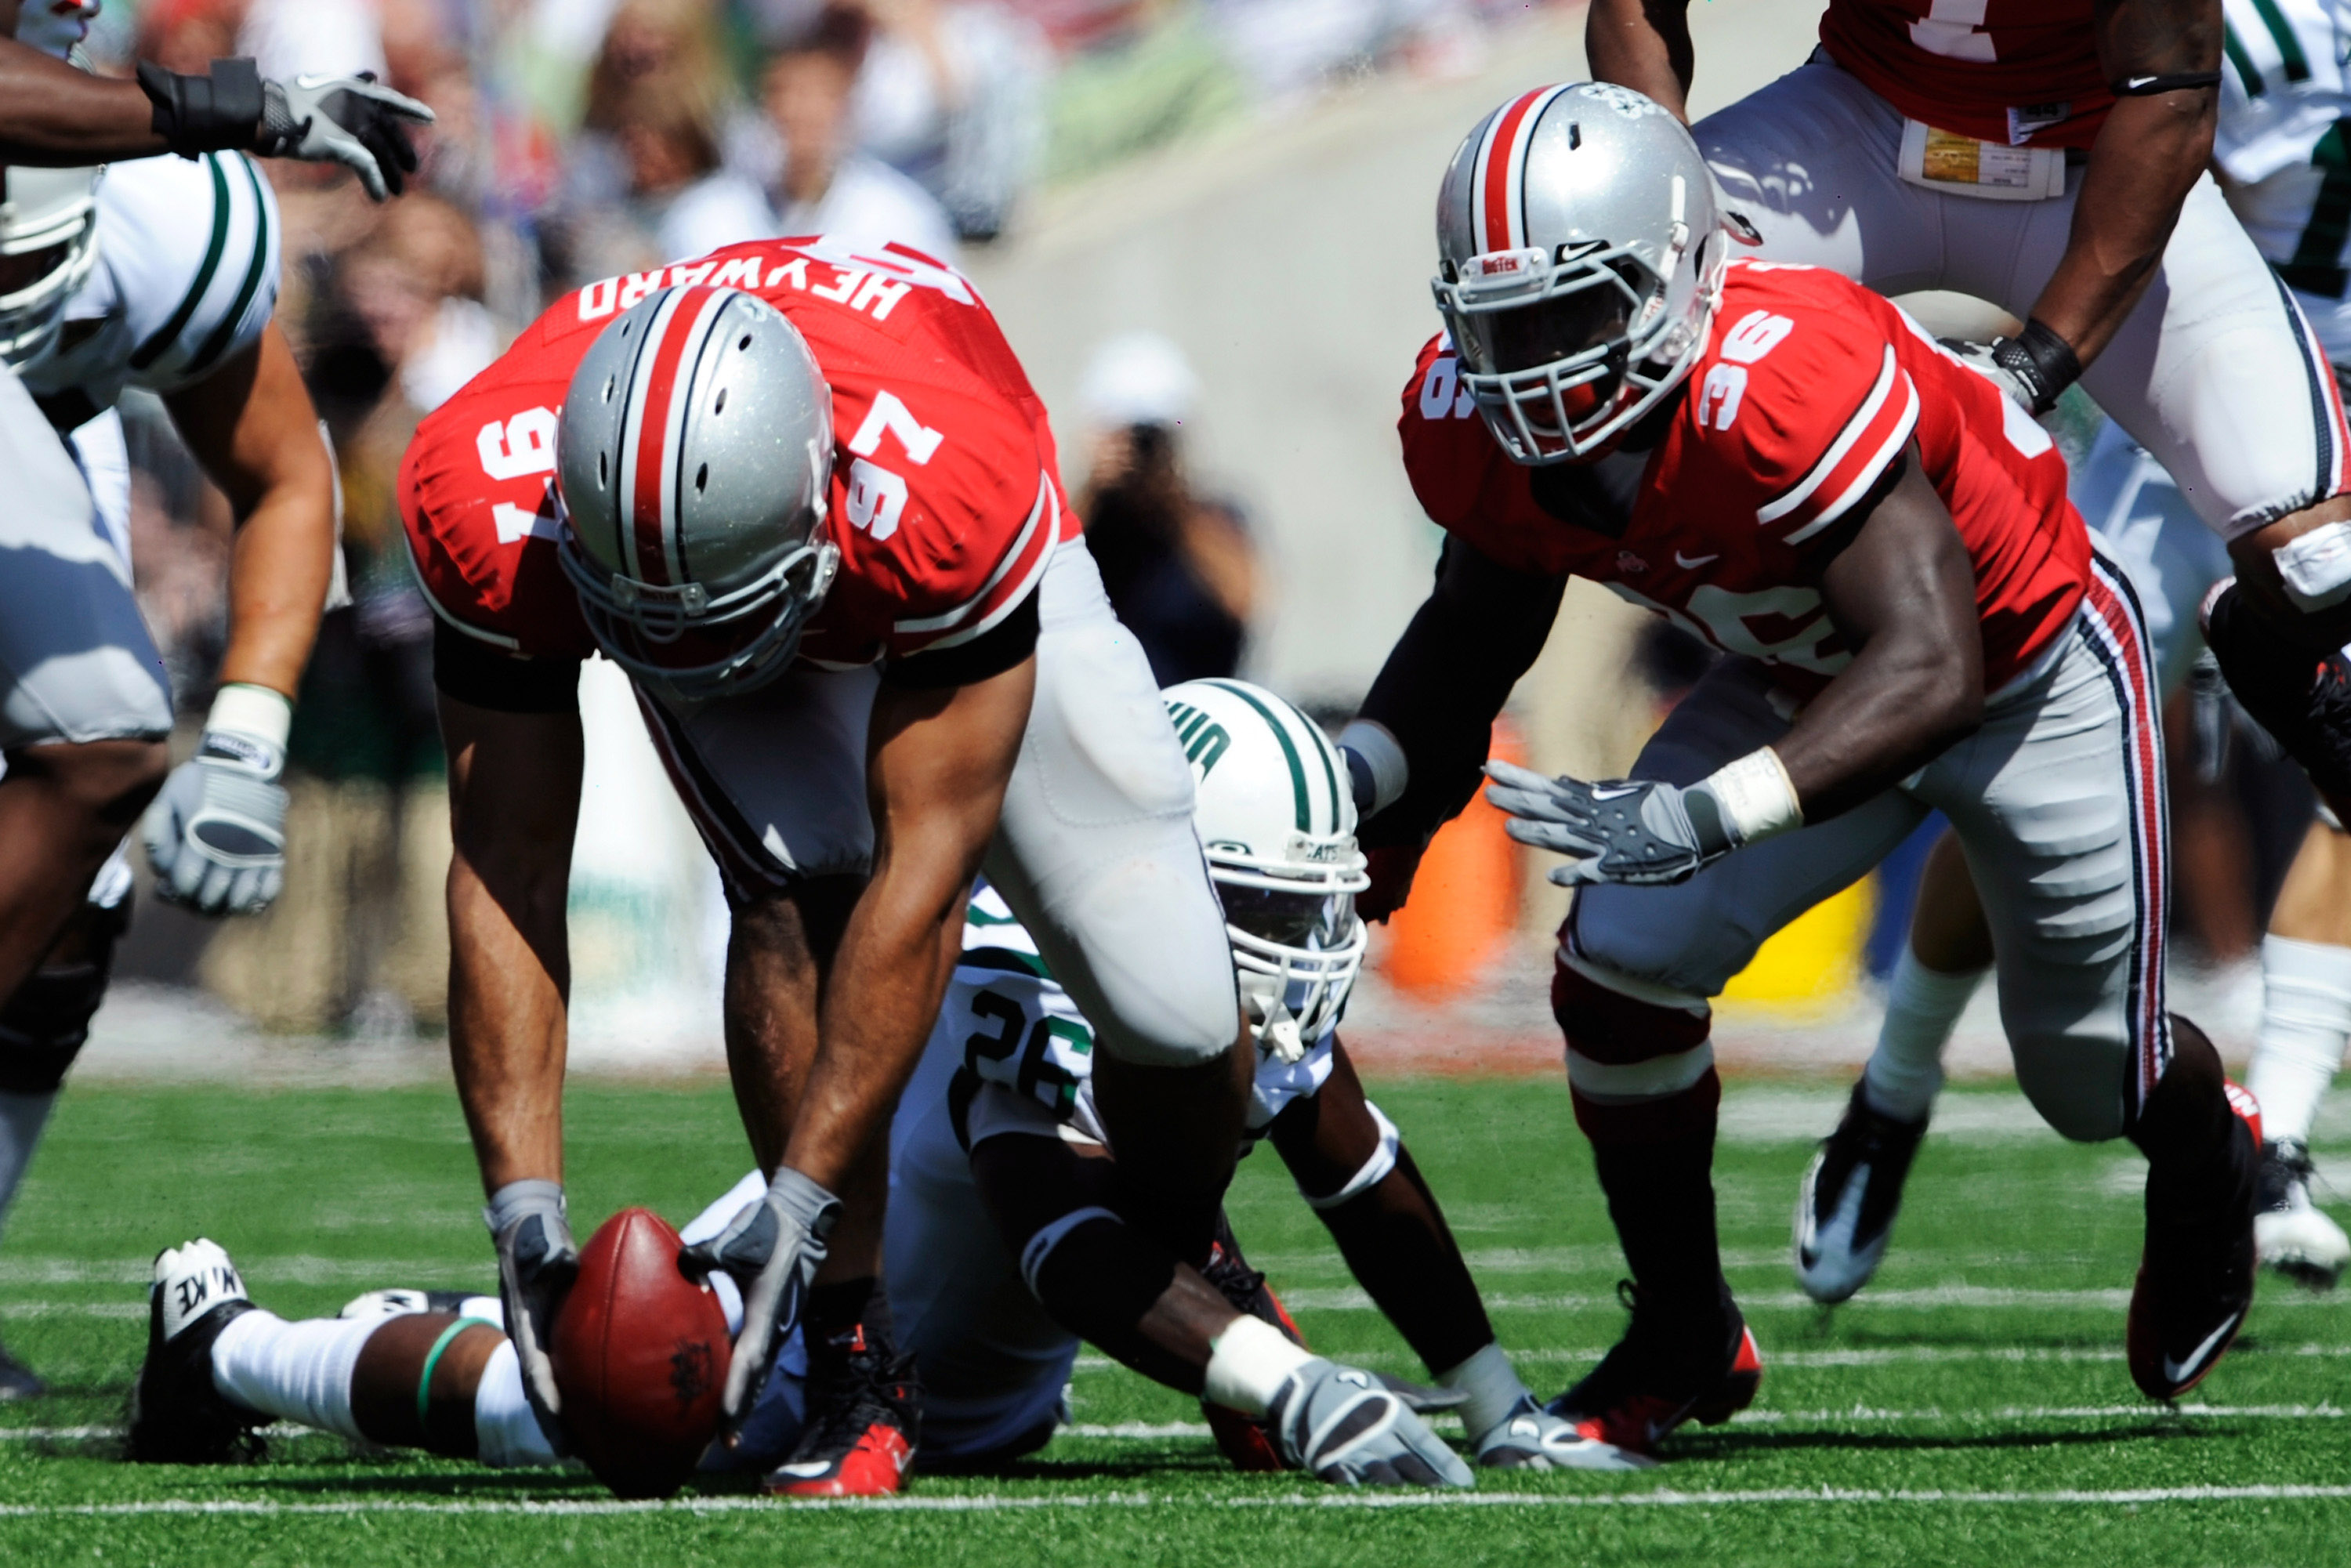 COLUMBUS, OH - SEPTEMBER 18:  Cameron Heyward #97 of the Ohio State Buckeyes picks up a fumble by Vince Davidson #26 of the Ohio Bobcats at Ohio Stadium on September 18, 2010 in Columbus, Ohio.  (Photo by Jamie Sabau/Getty Images)